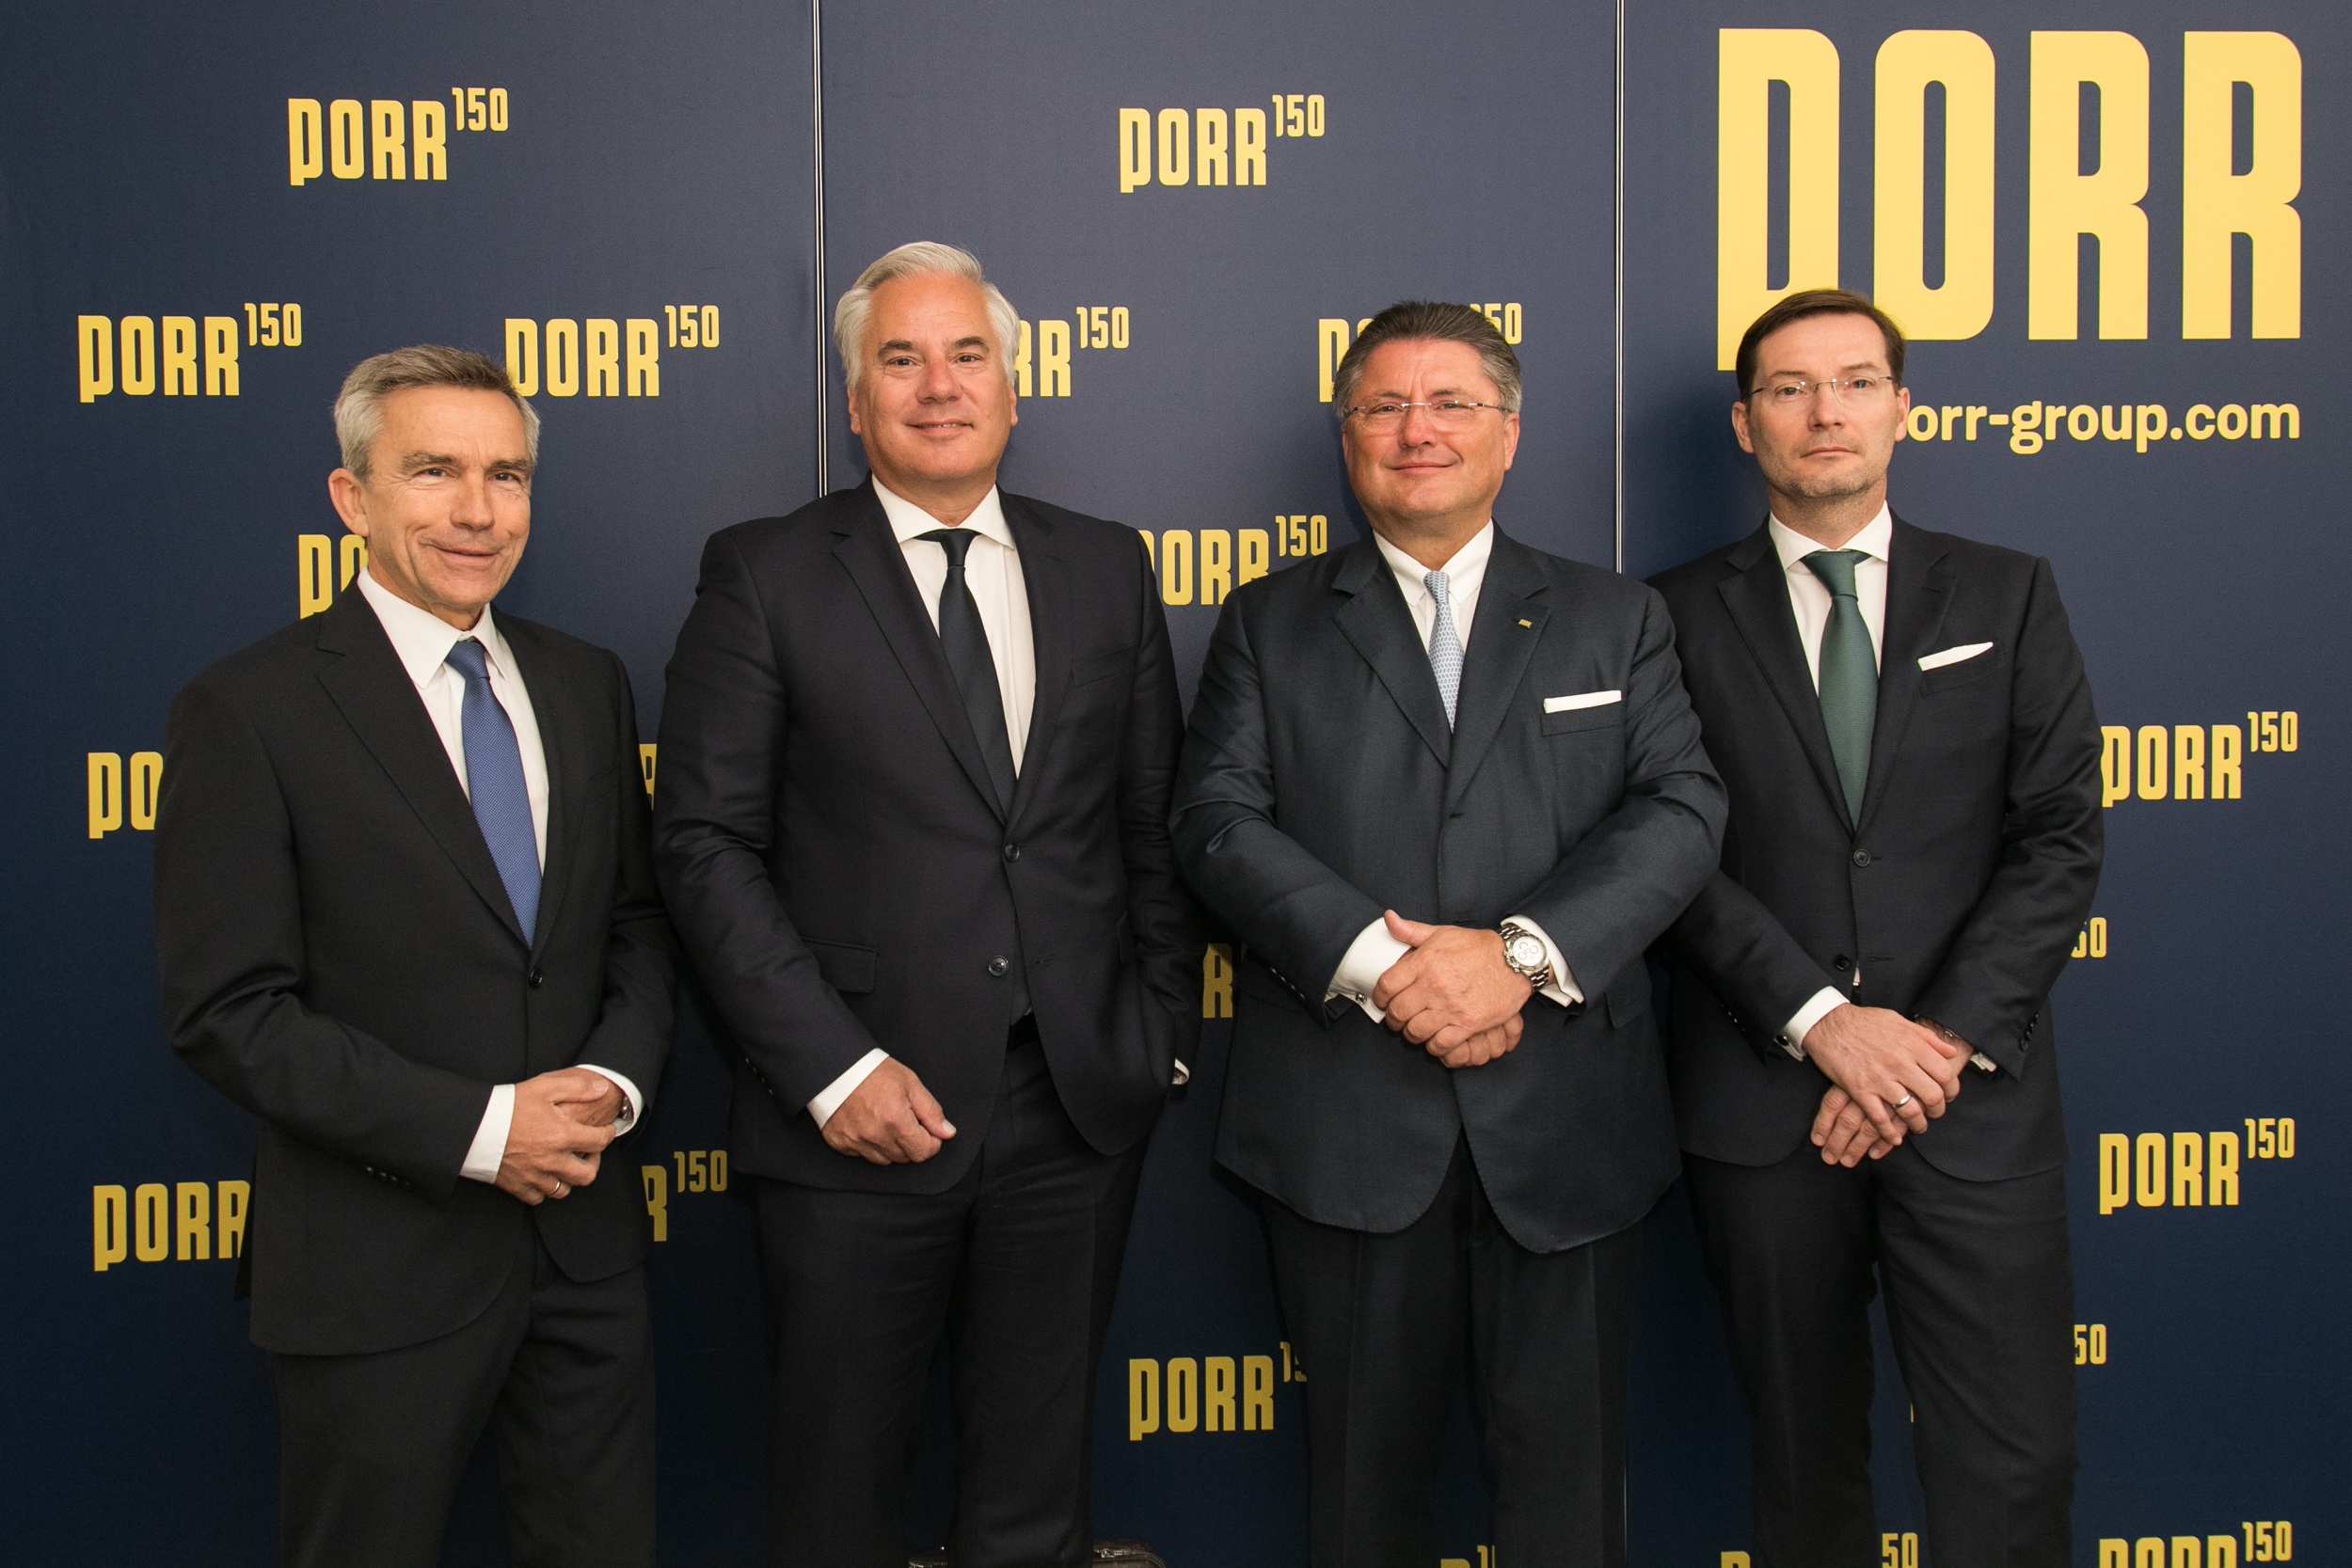 PORR Group Executive Board April 2019